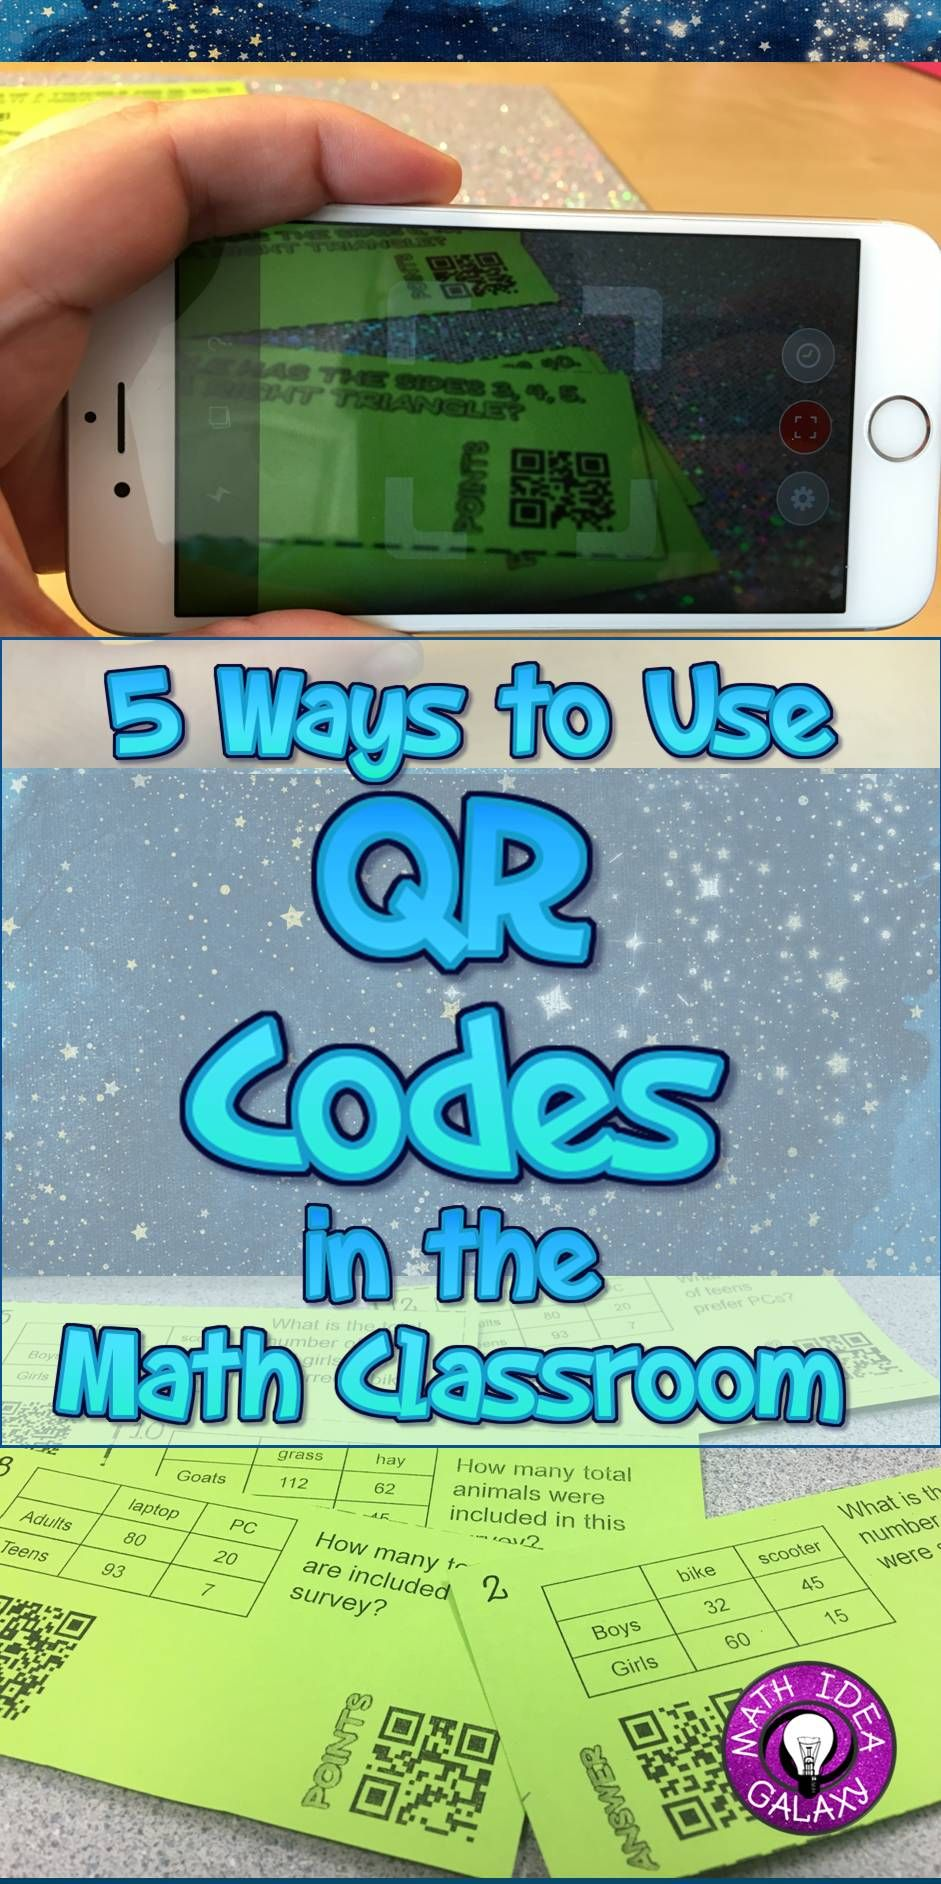 5 Ways To Use Qr Codes In The Math Classroom High School Math Classroom Math Classroom Qr Code Math